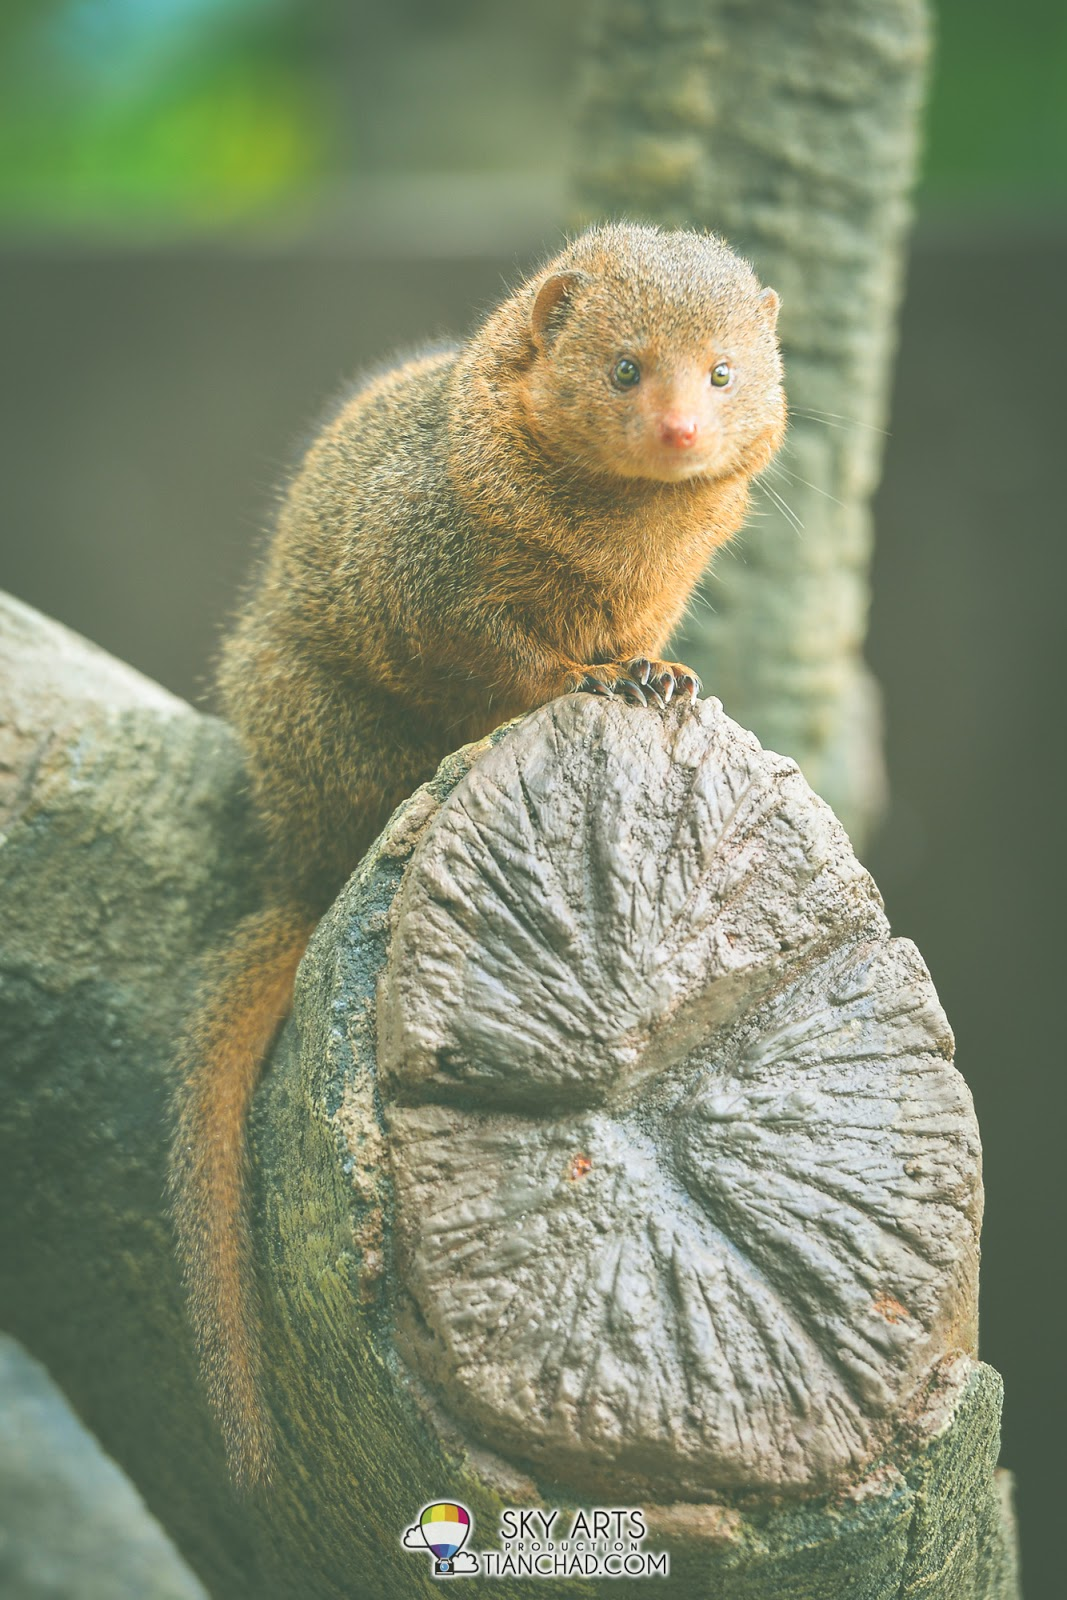 Common Dwarf Mongoose taking sunbath on a tree trunk